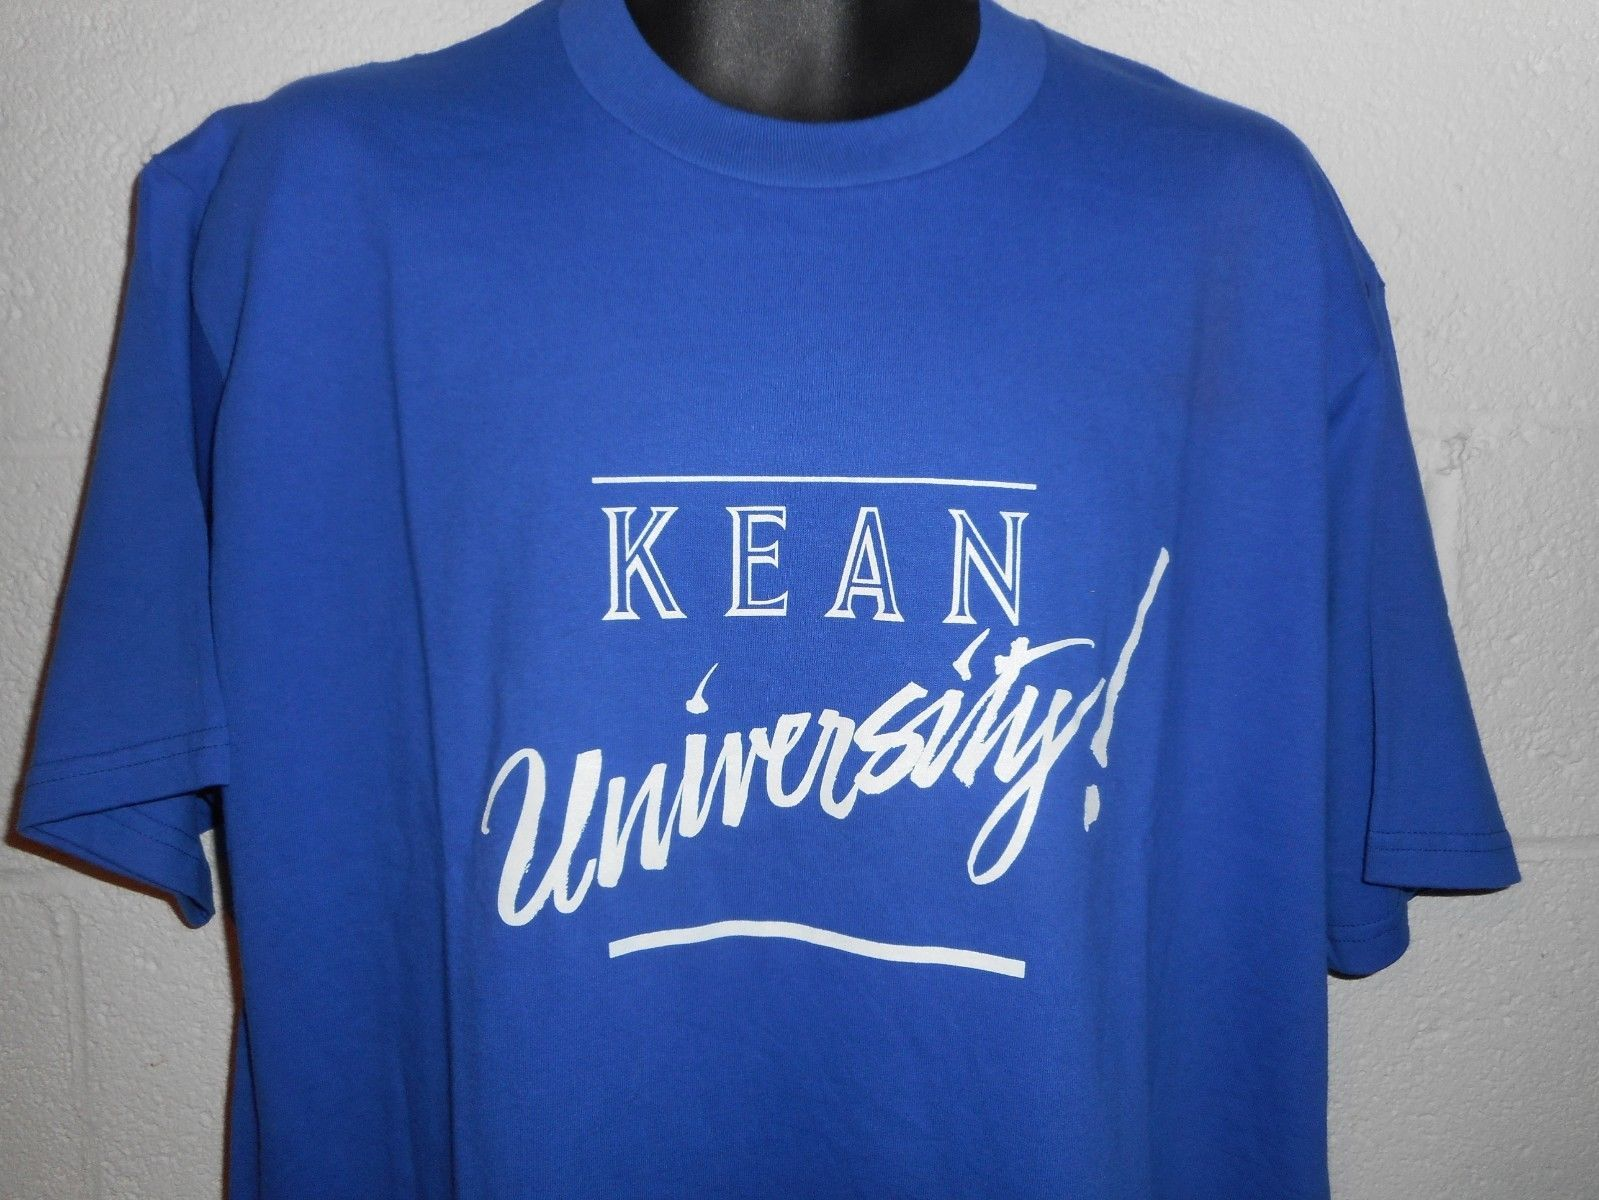 c06807c82b0 Vintage 90s Kean University New Jersey and 50 similar items